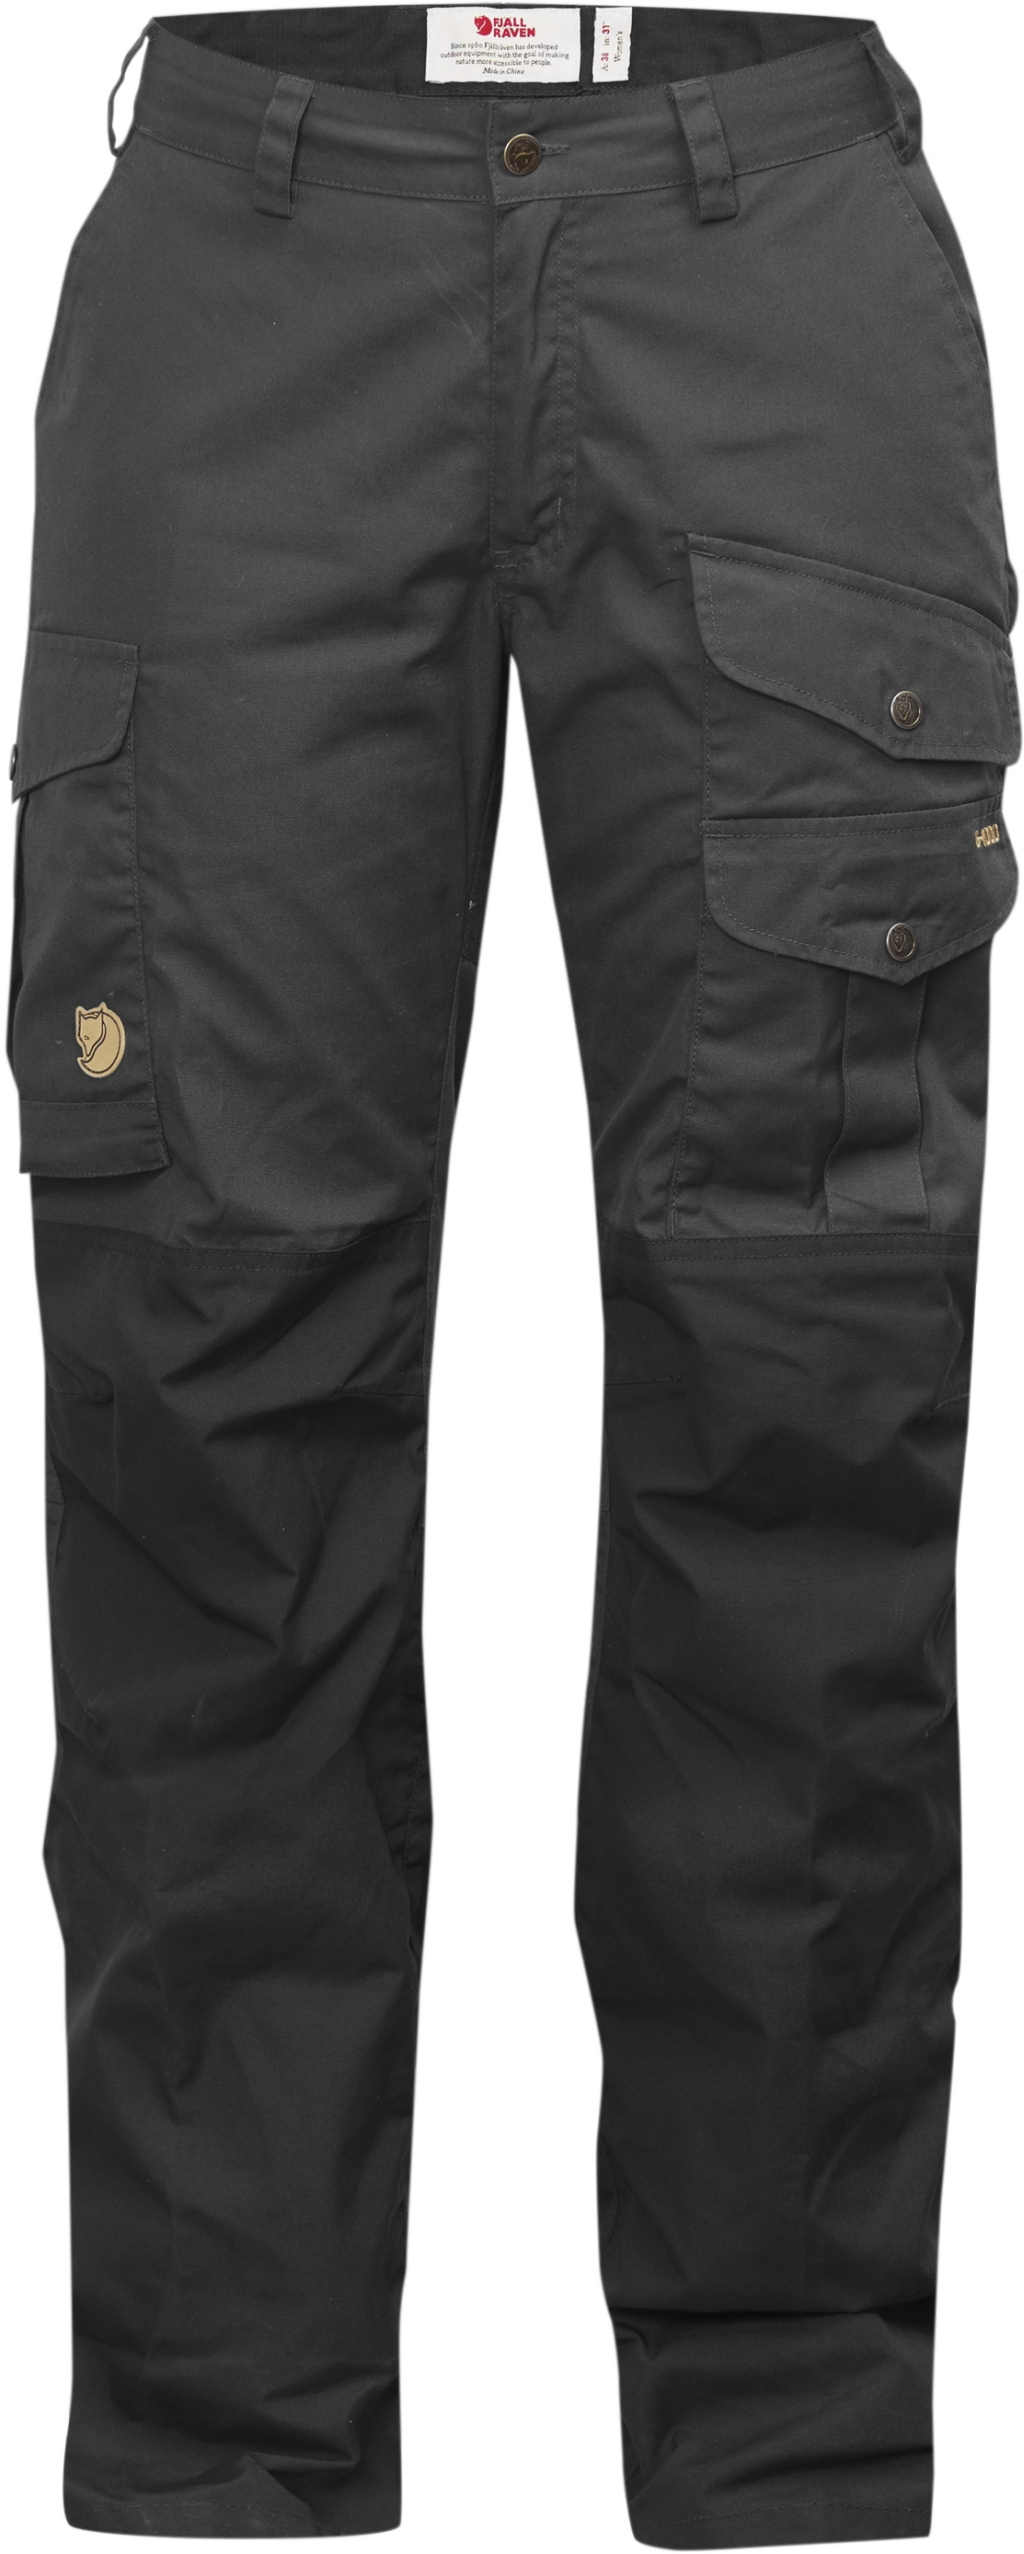 FjallRaven Barents Pro Trousers Curved W Dark Grey-30